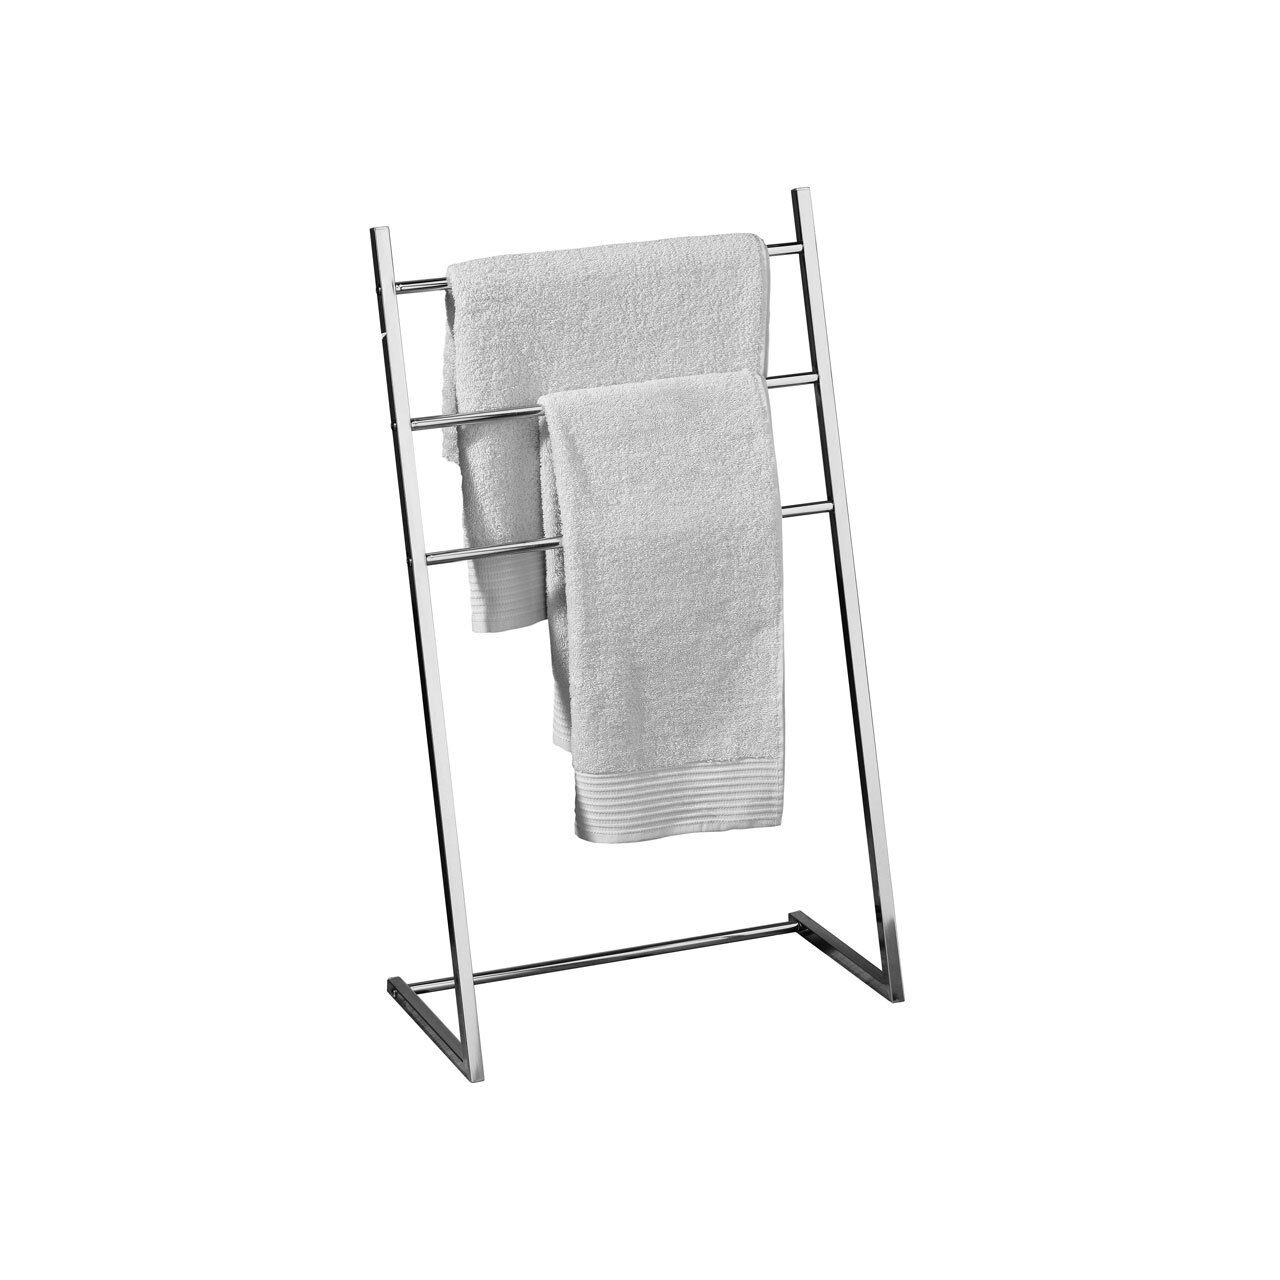 Magnificent Free Standing Bathroom Towel Rack Stand 1280 x 1280 · 76 kB · jpeg